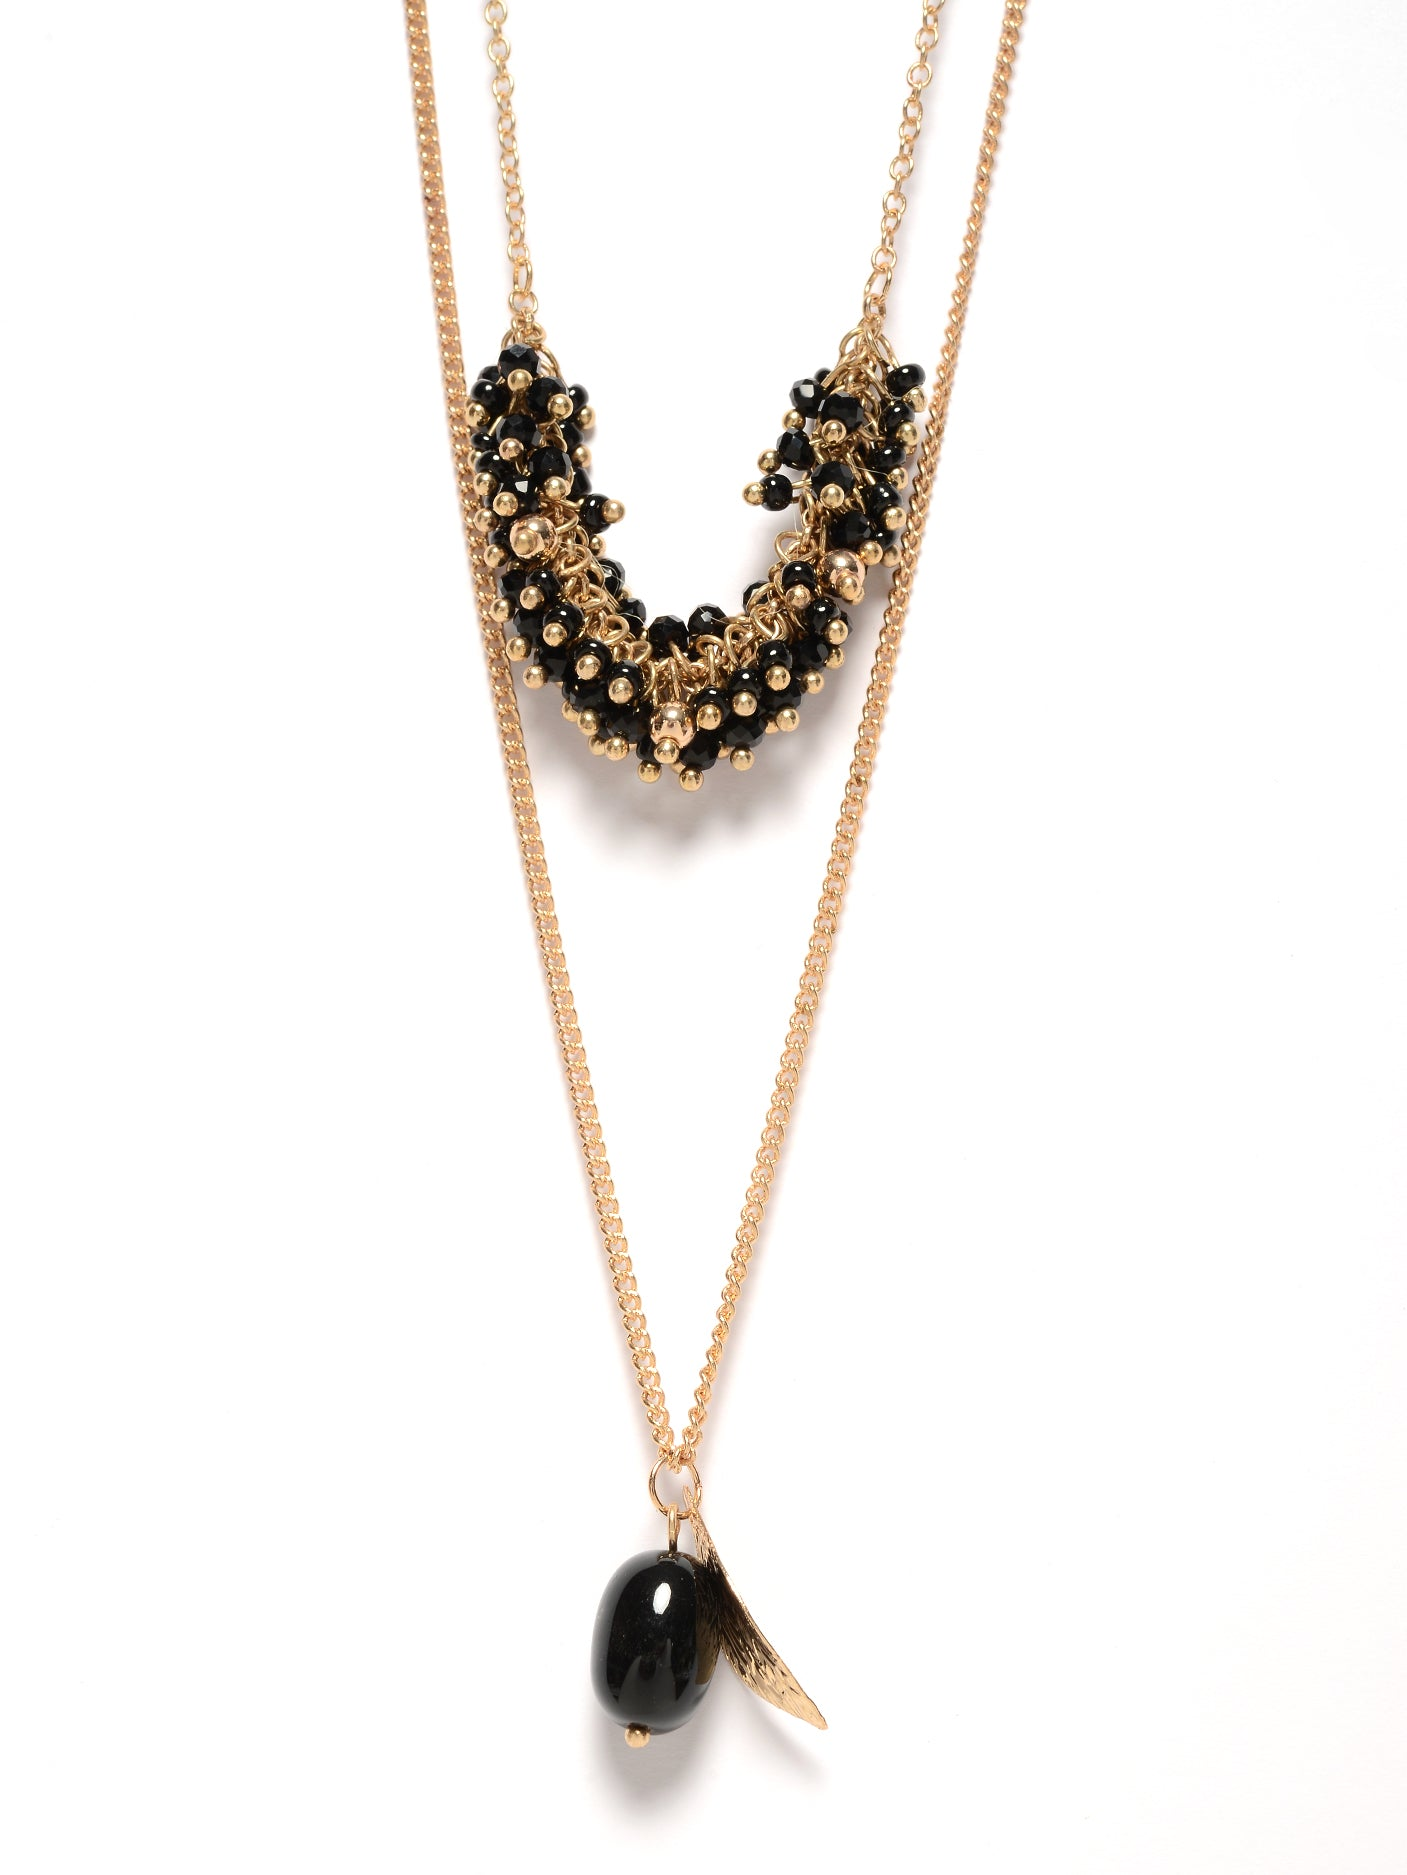 Bunched Bead Necklace